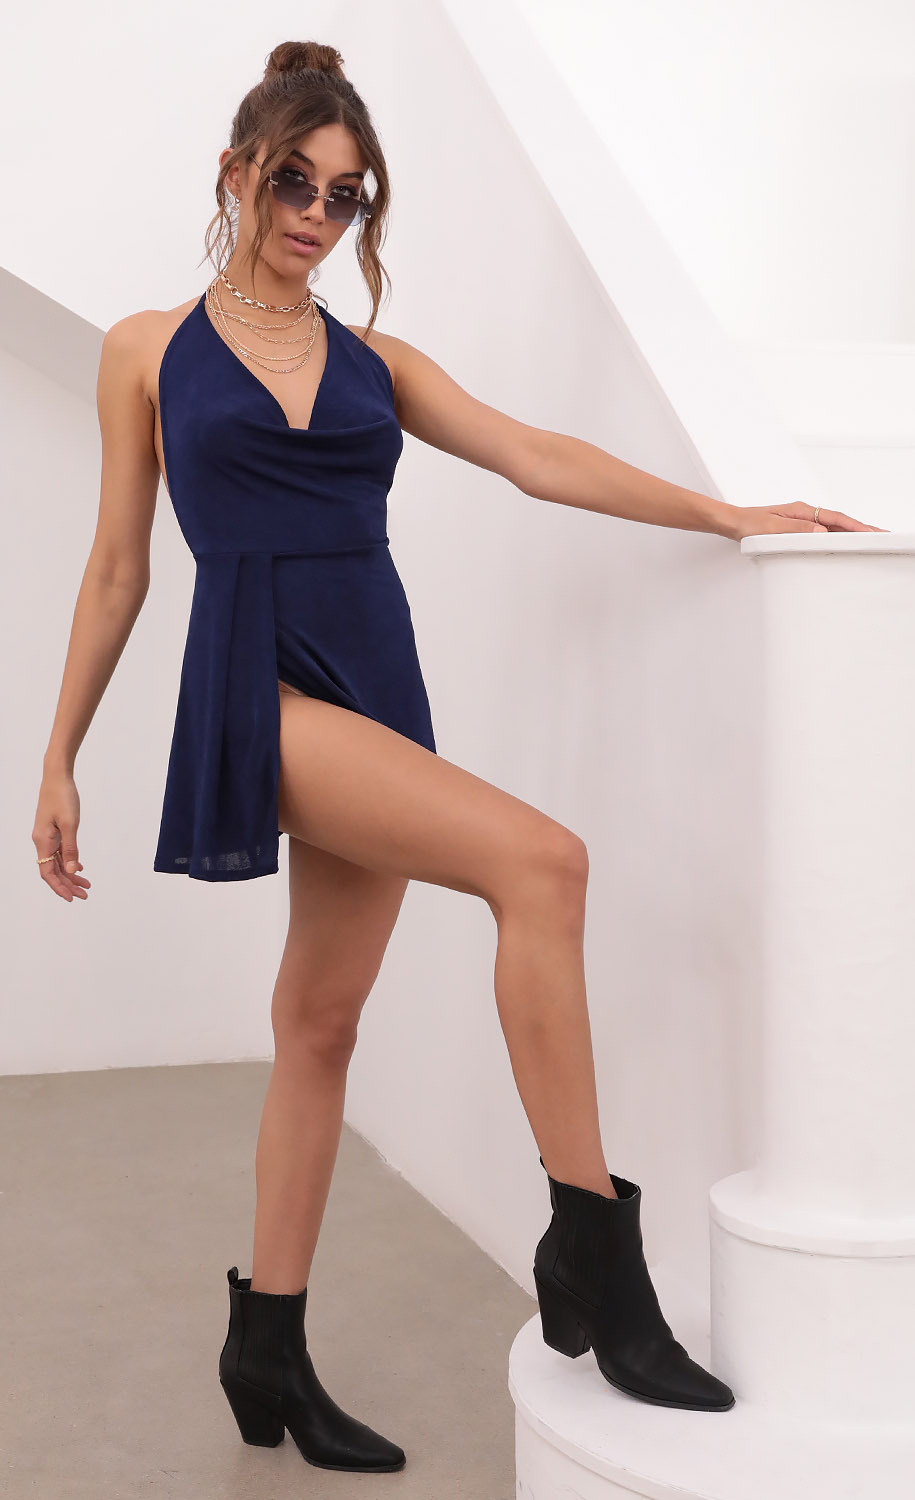 Kiana Cowl Neck Dress in Navy